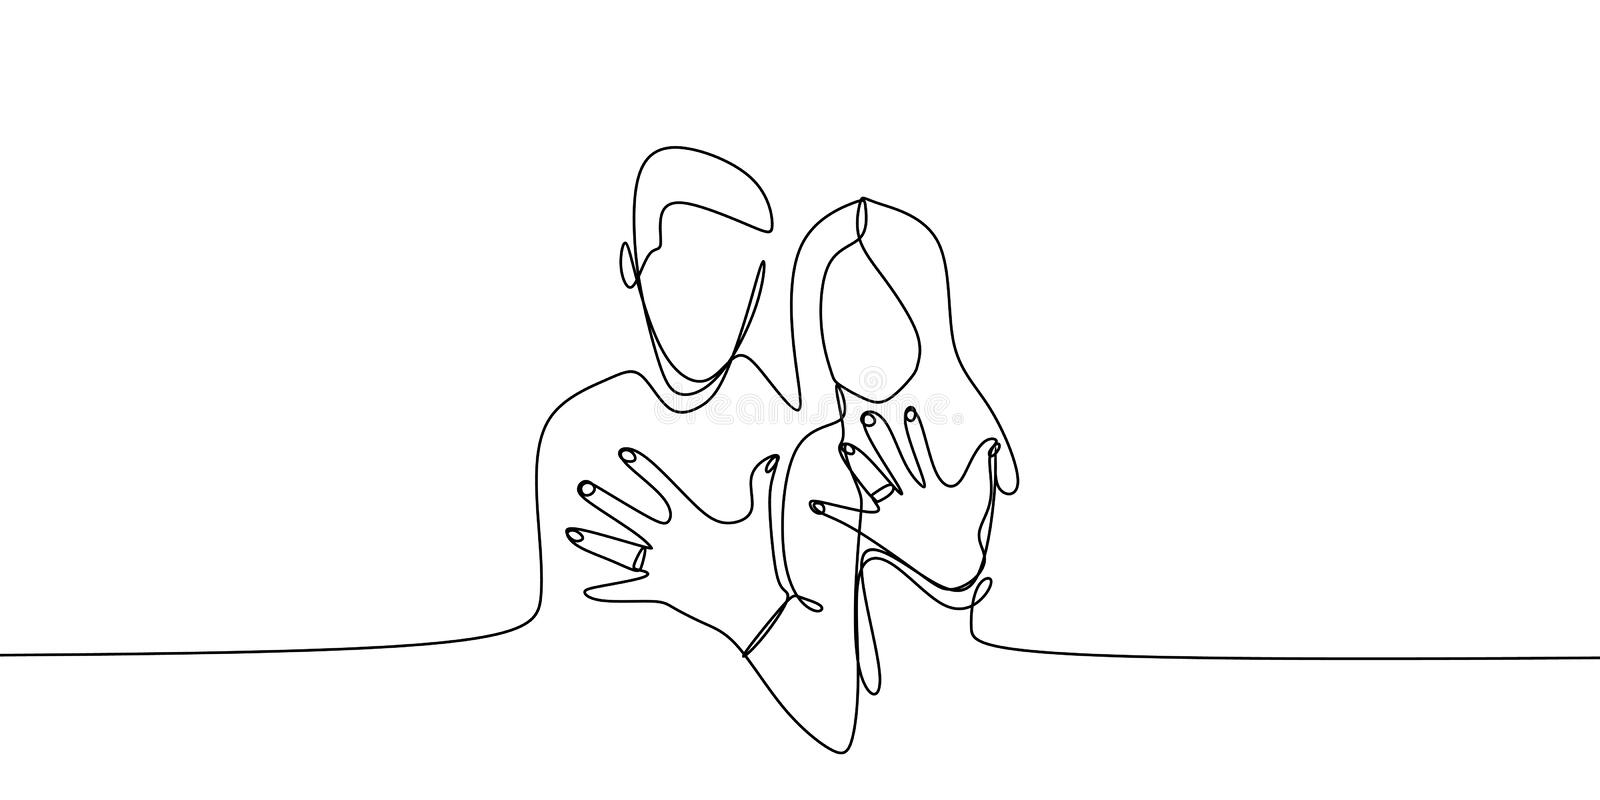 Married couple showing his and her ring after wedding with continuous single one line art drawing vector vector illustration